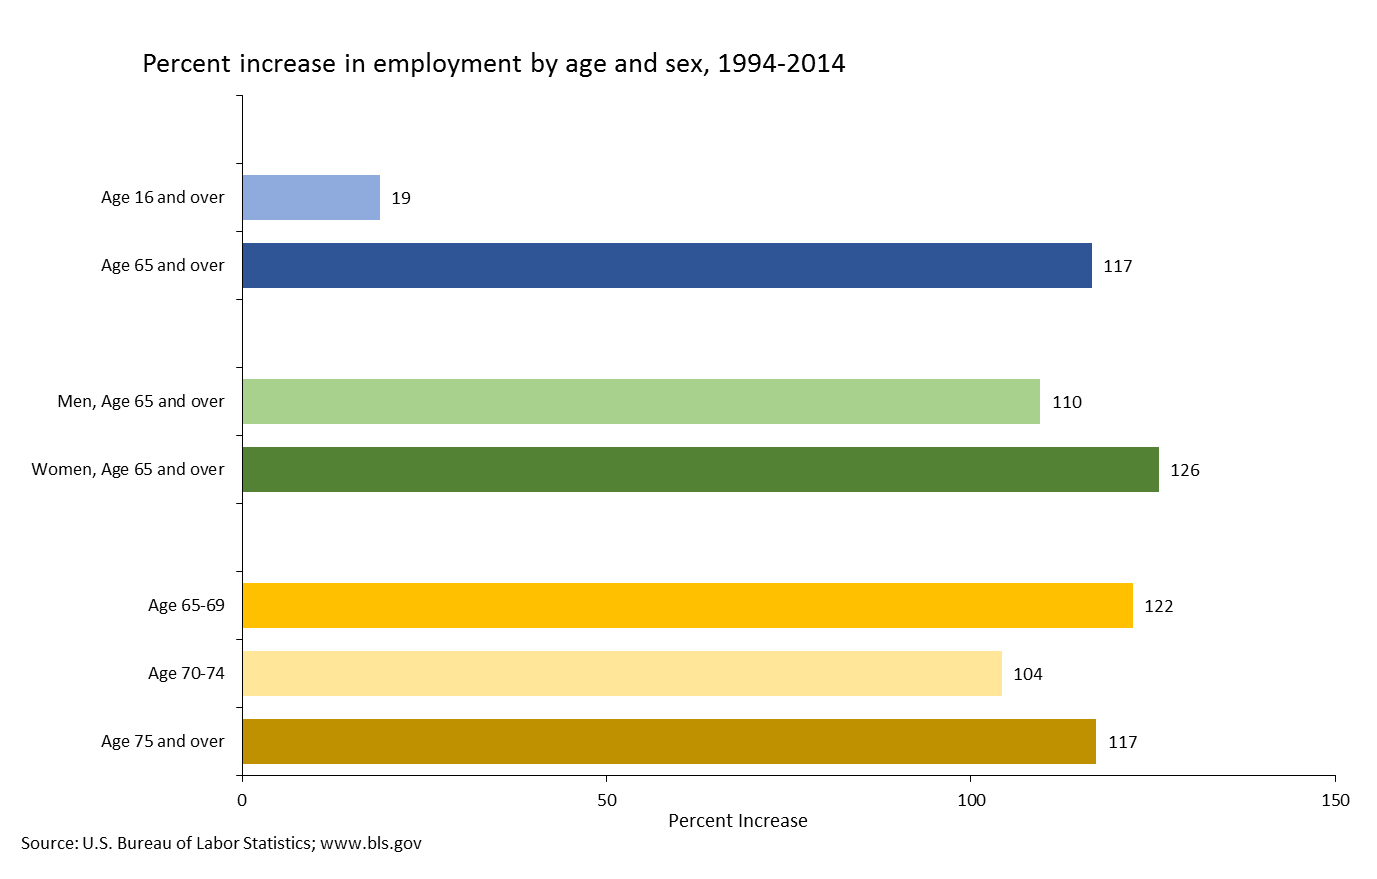 graph showing percent increase in employment by age and sex from 1994 2014